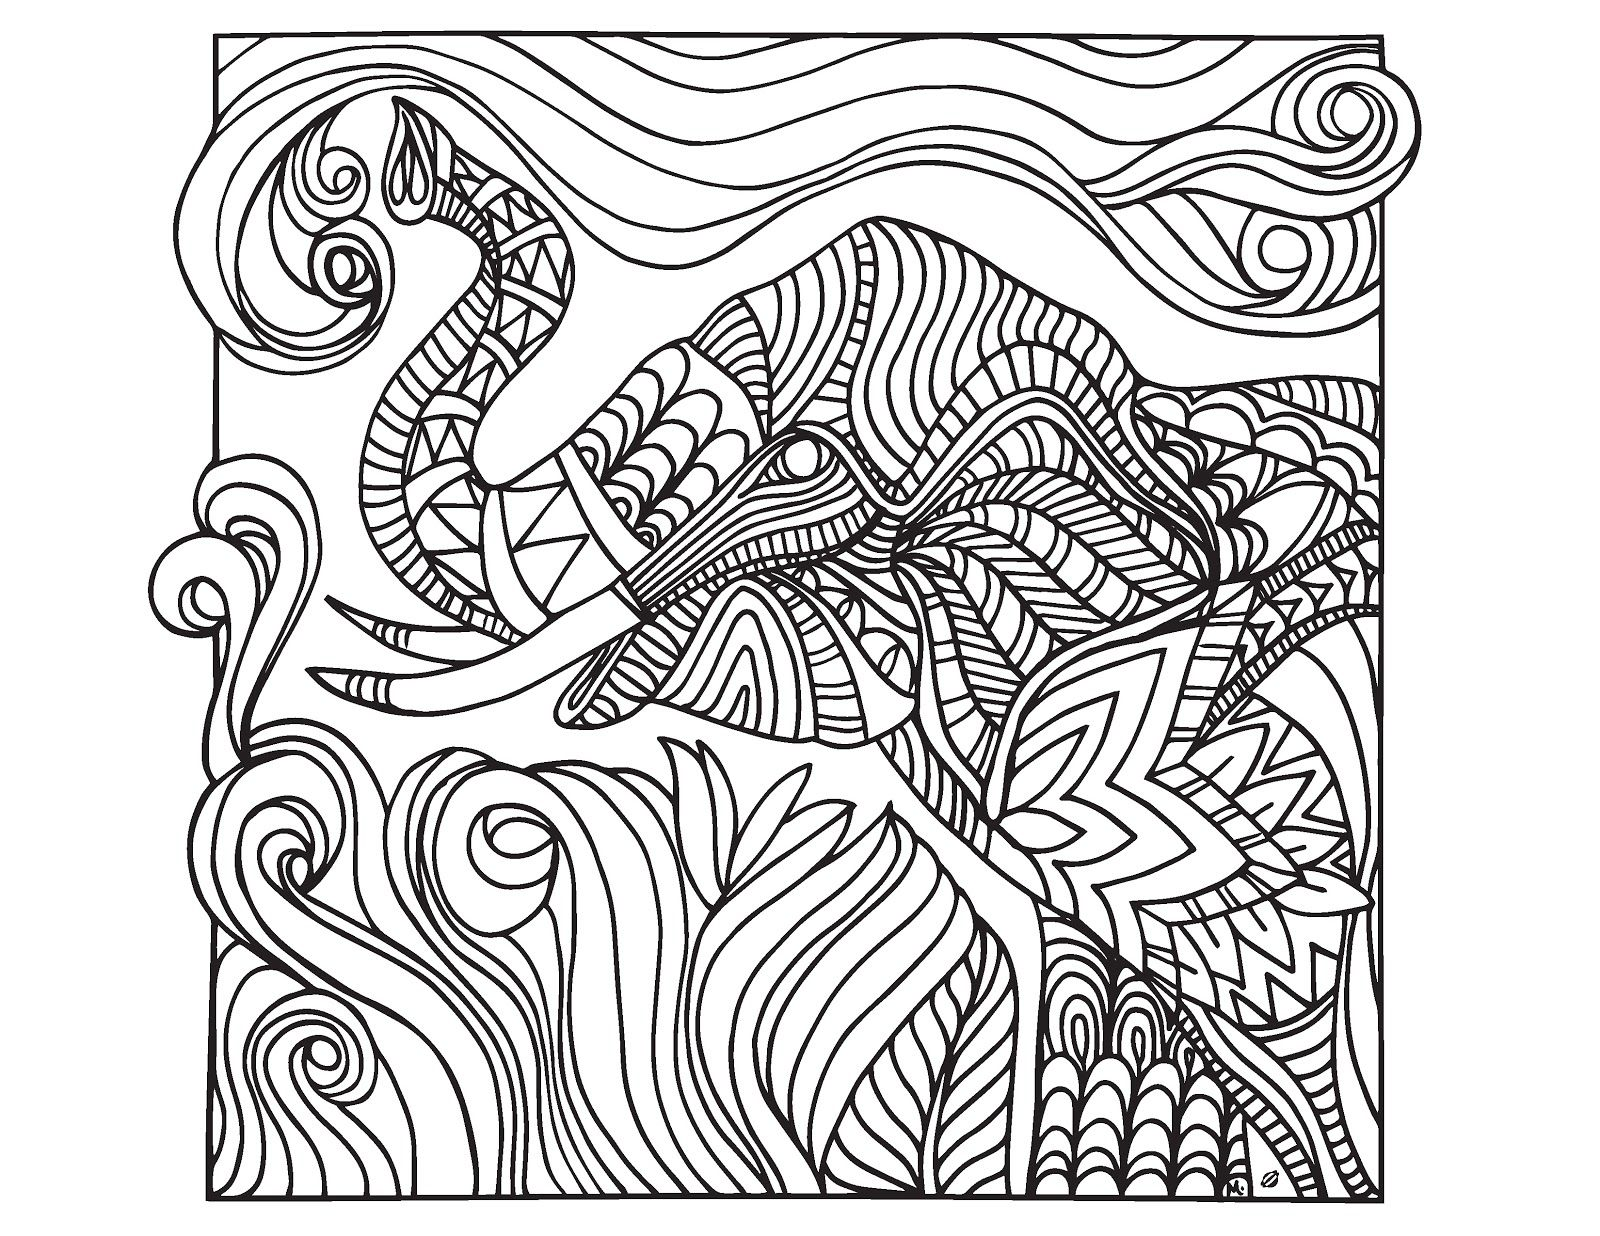 difficult abstract elephant coloring pages for adults abstract elephant coloring pages for adults coloring tone